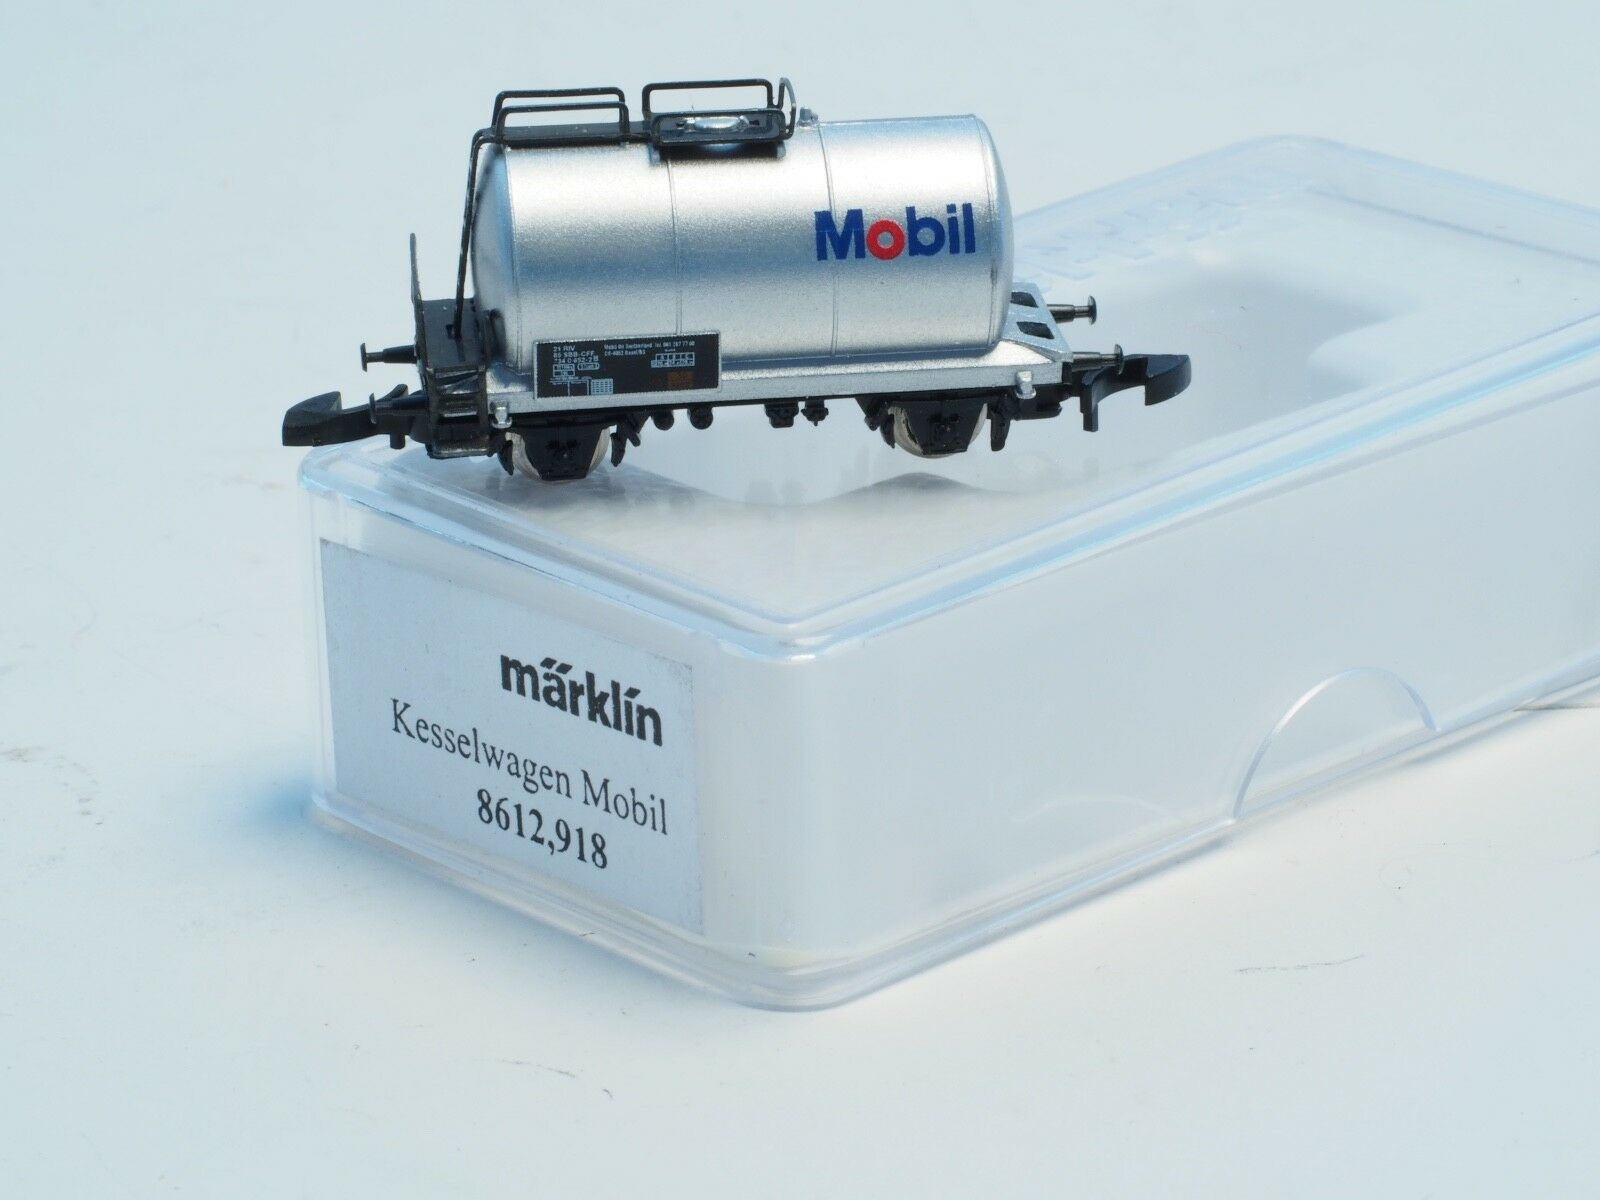 8612.918 Marklin Z-scale MOBIL Tank car Special Edition, very limited release